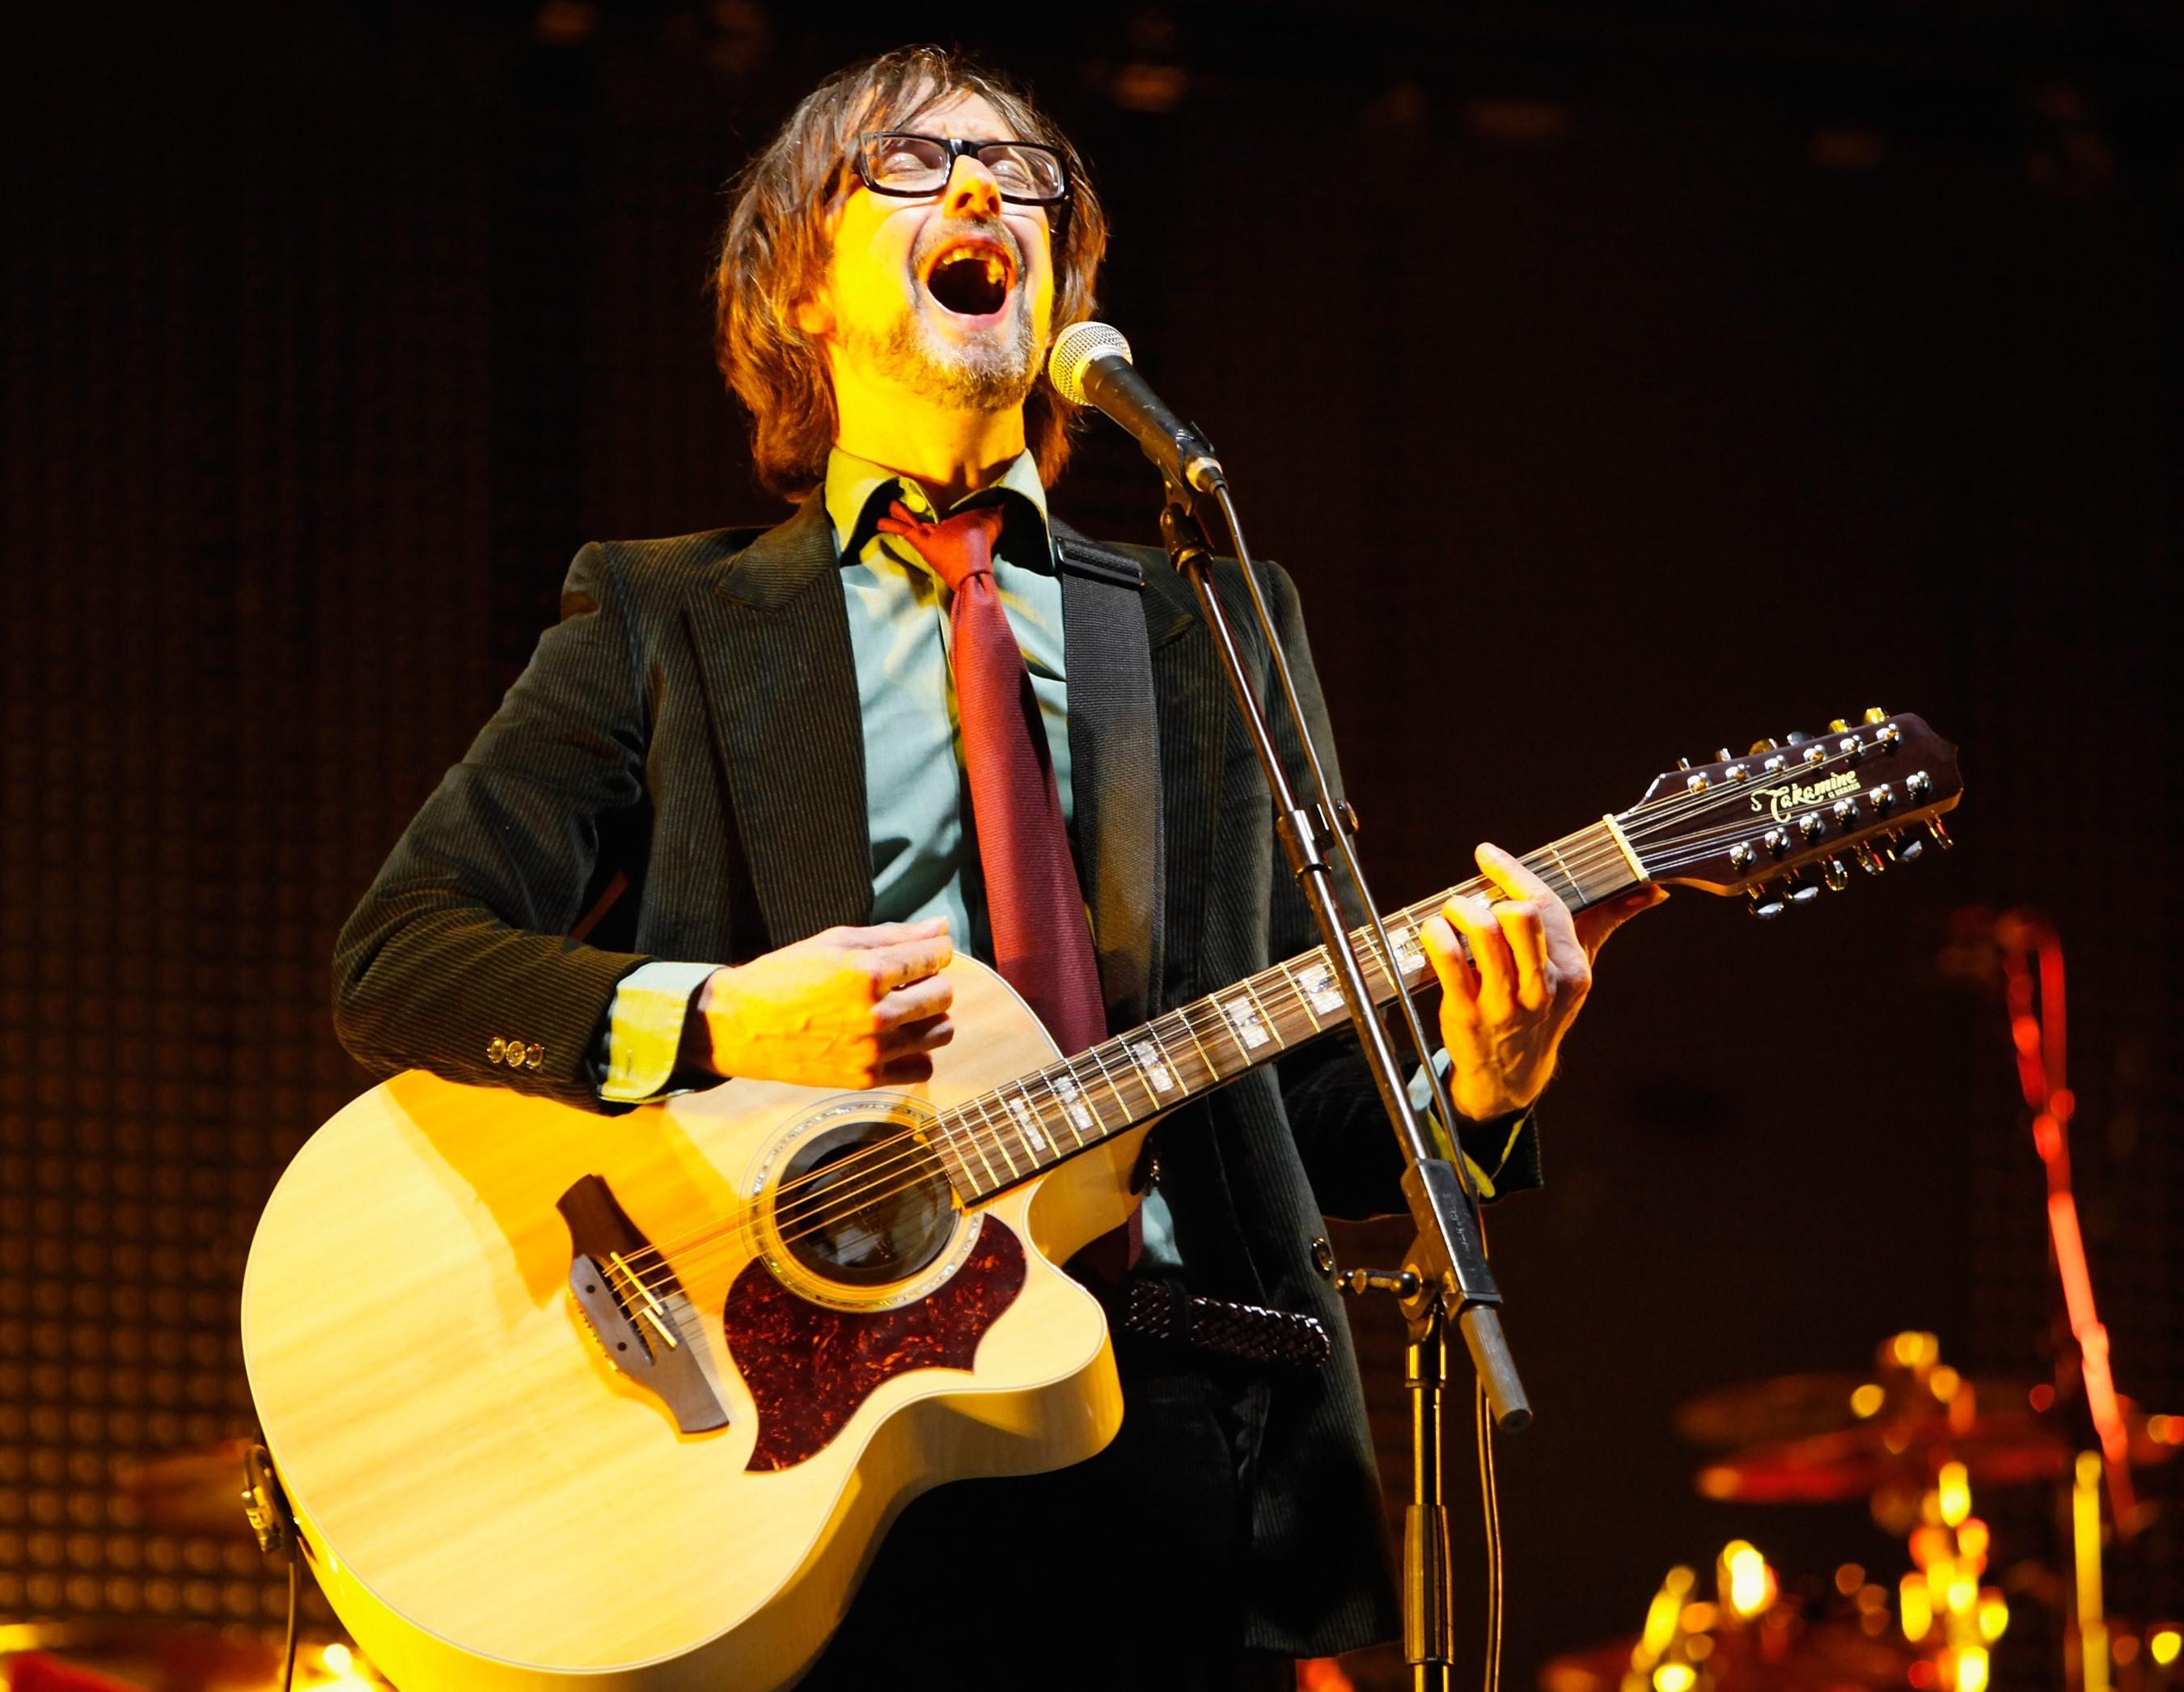 Pulp unveil first new track for 10 years entitled After You